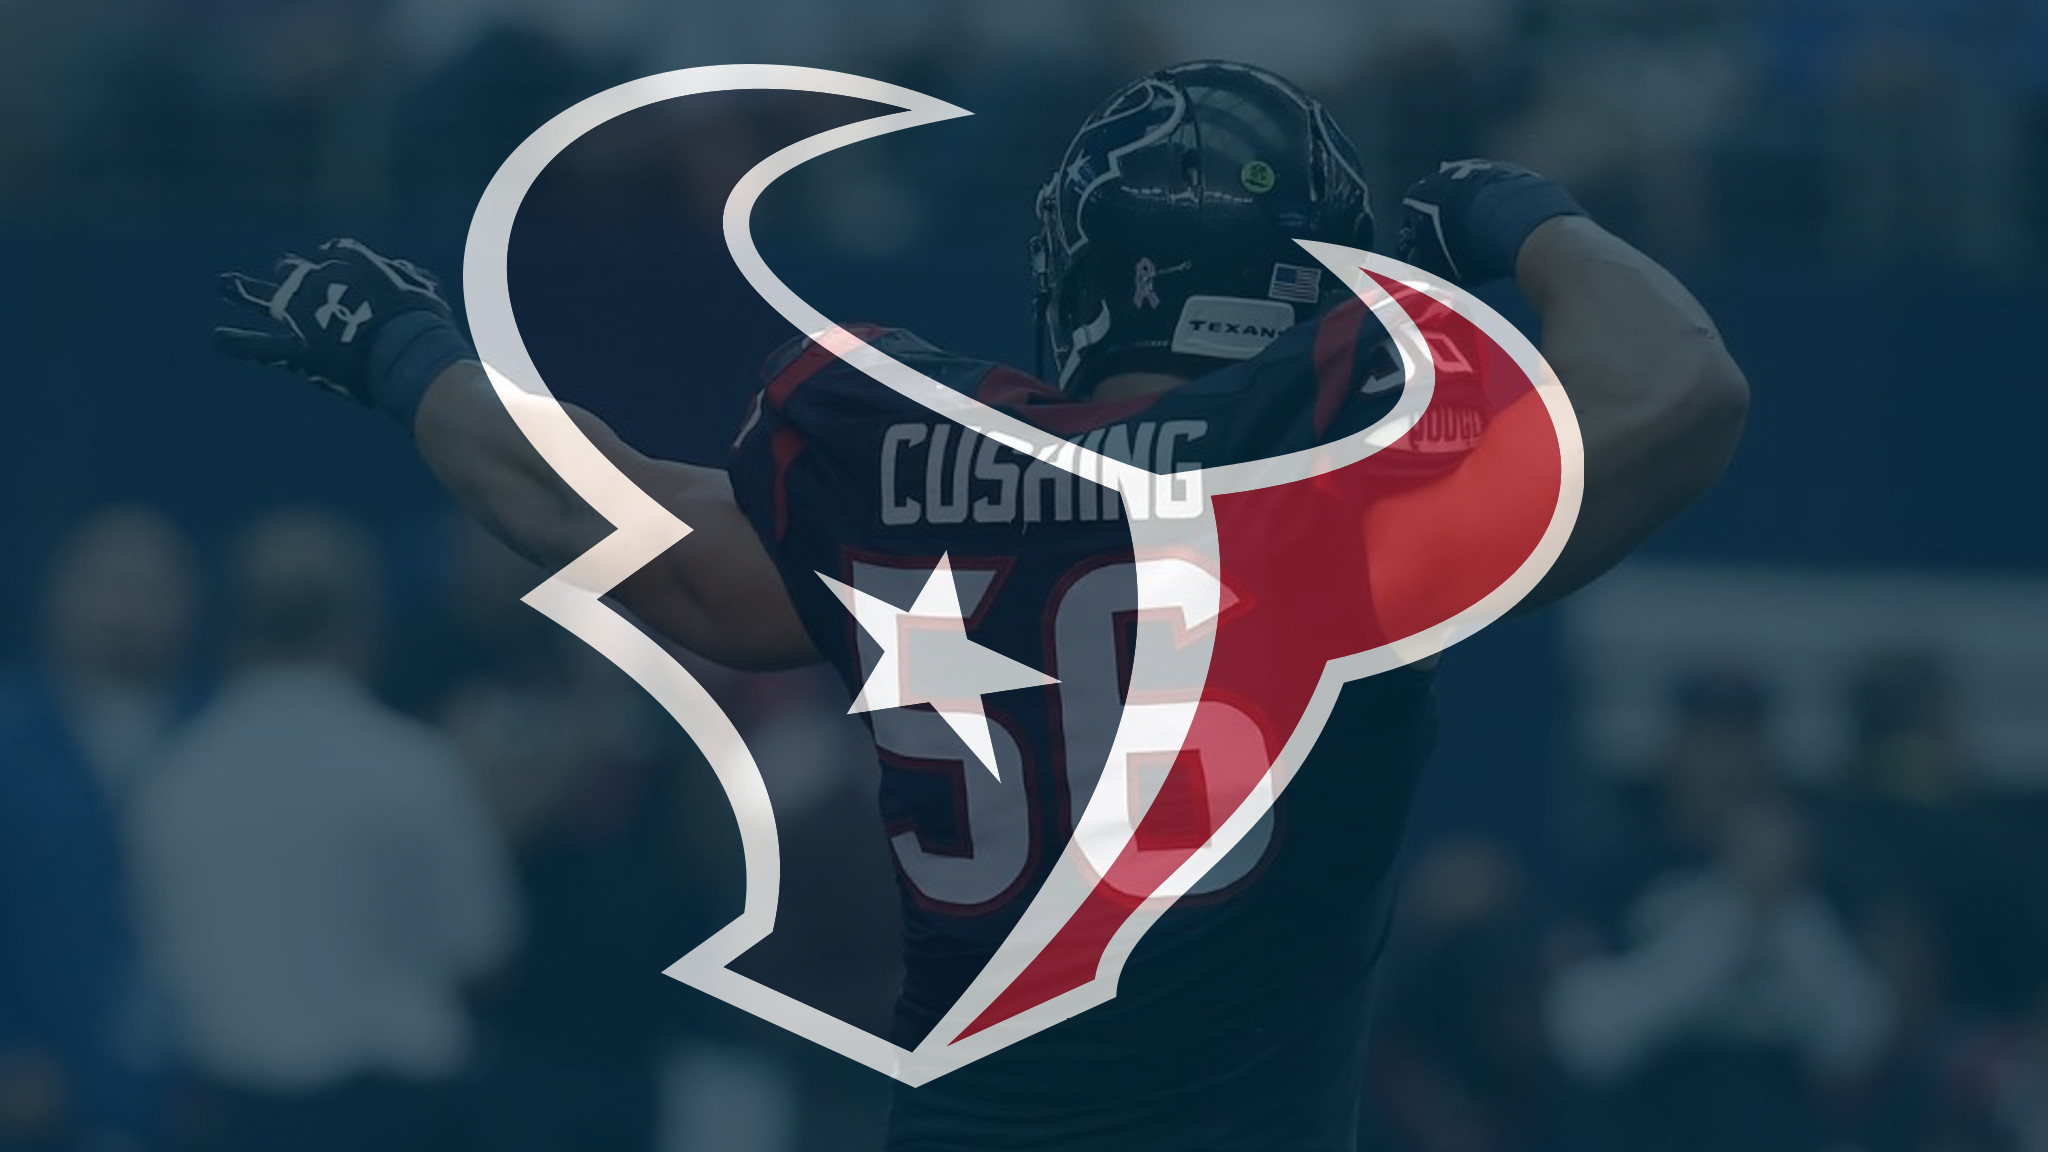 Houston Texans 2018 Wallpapers (73+ Images